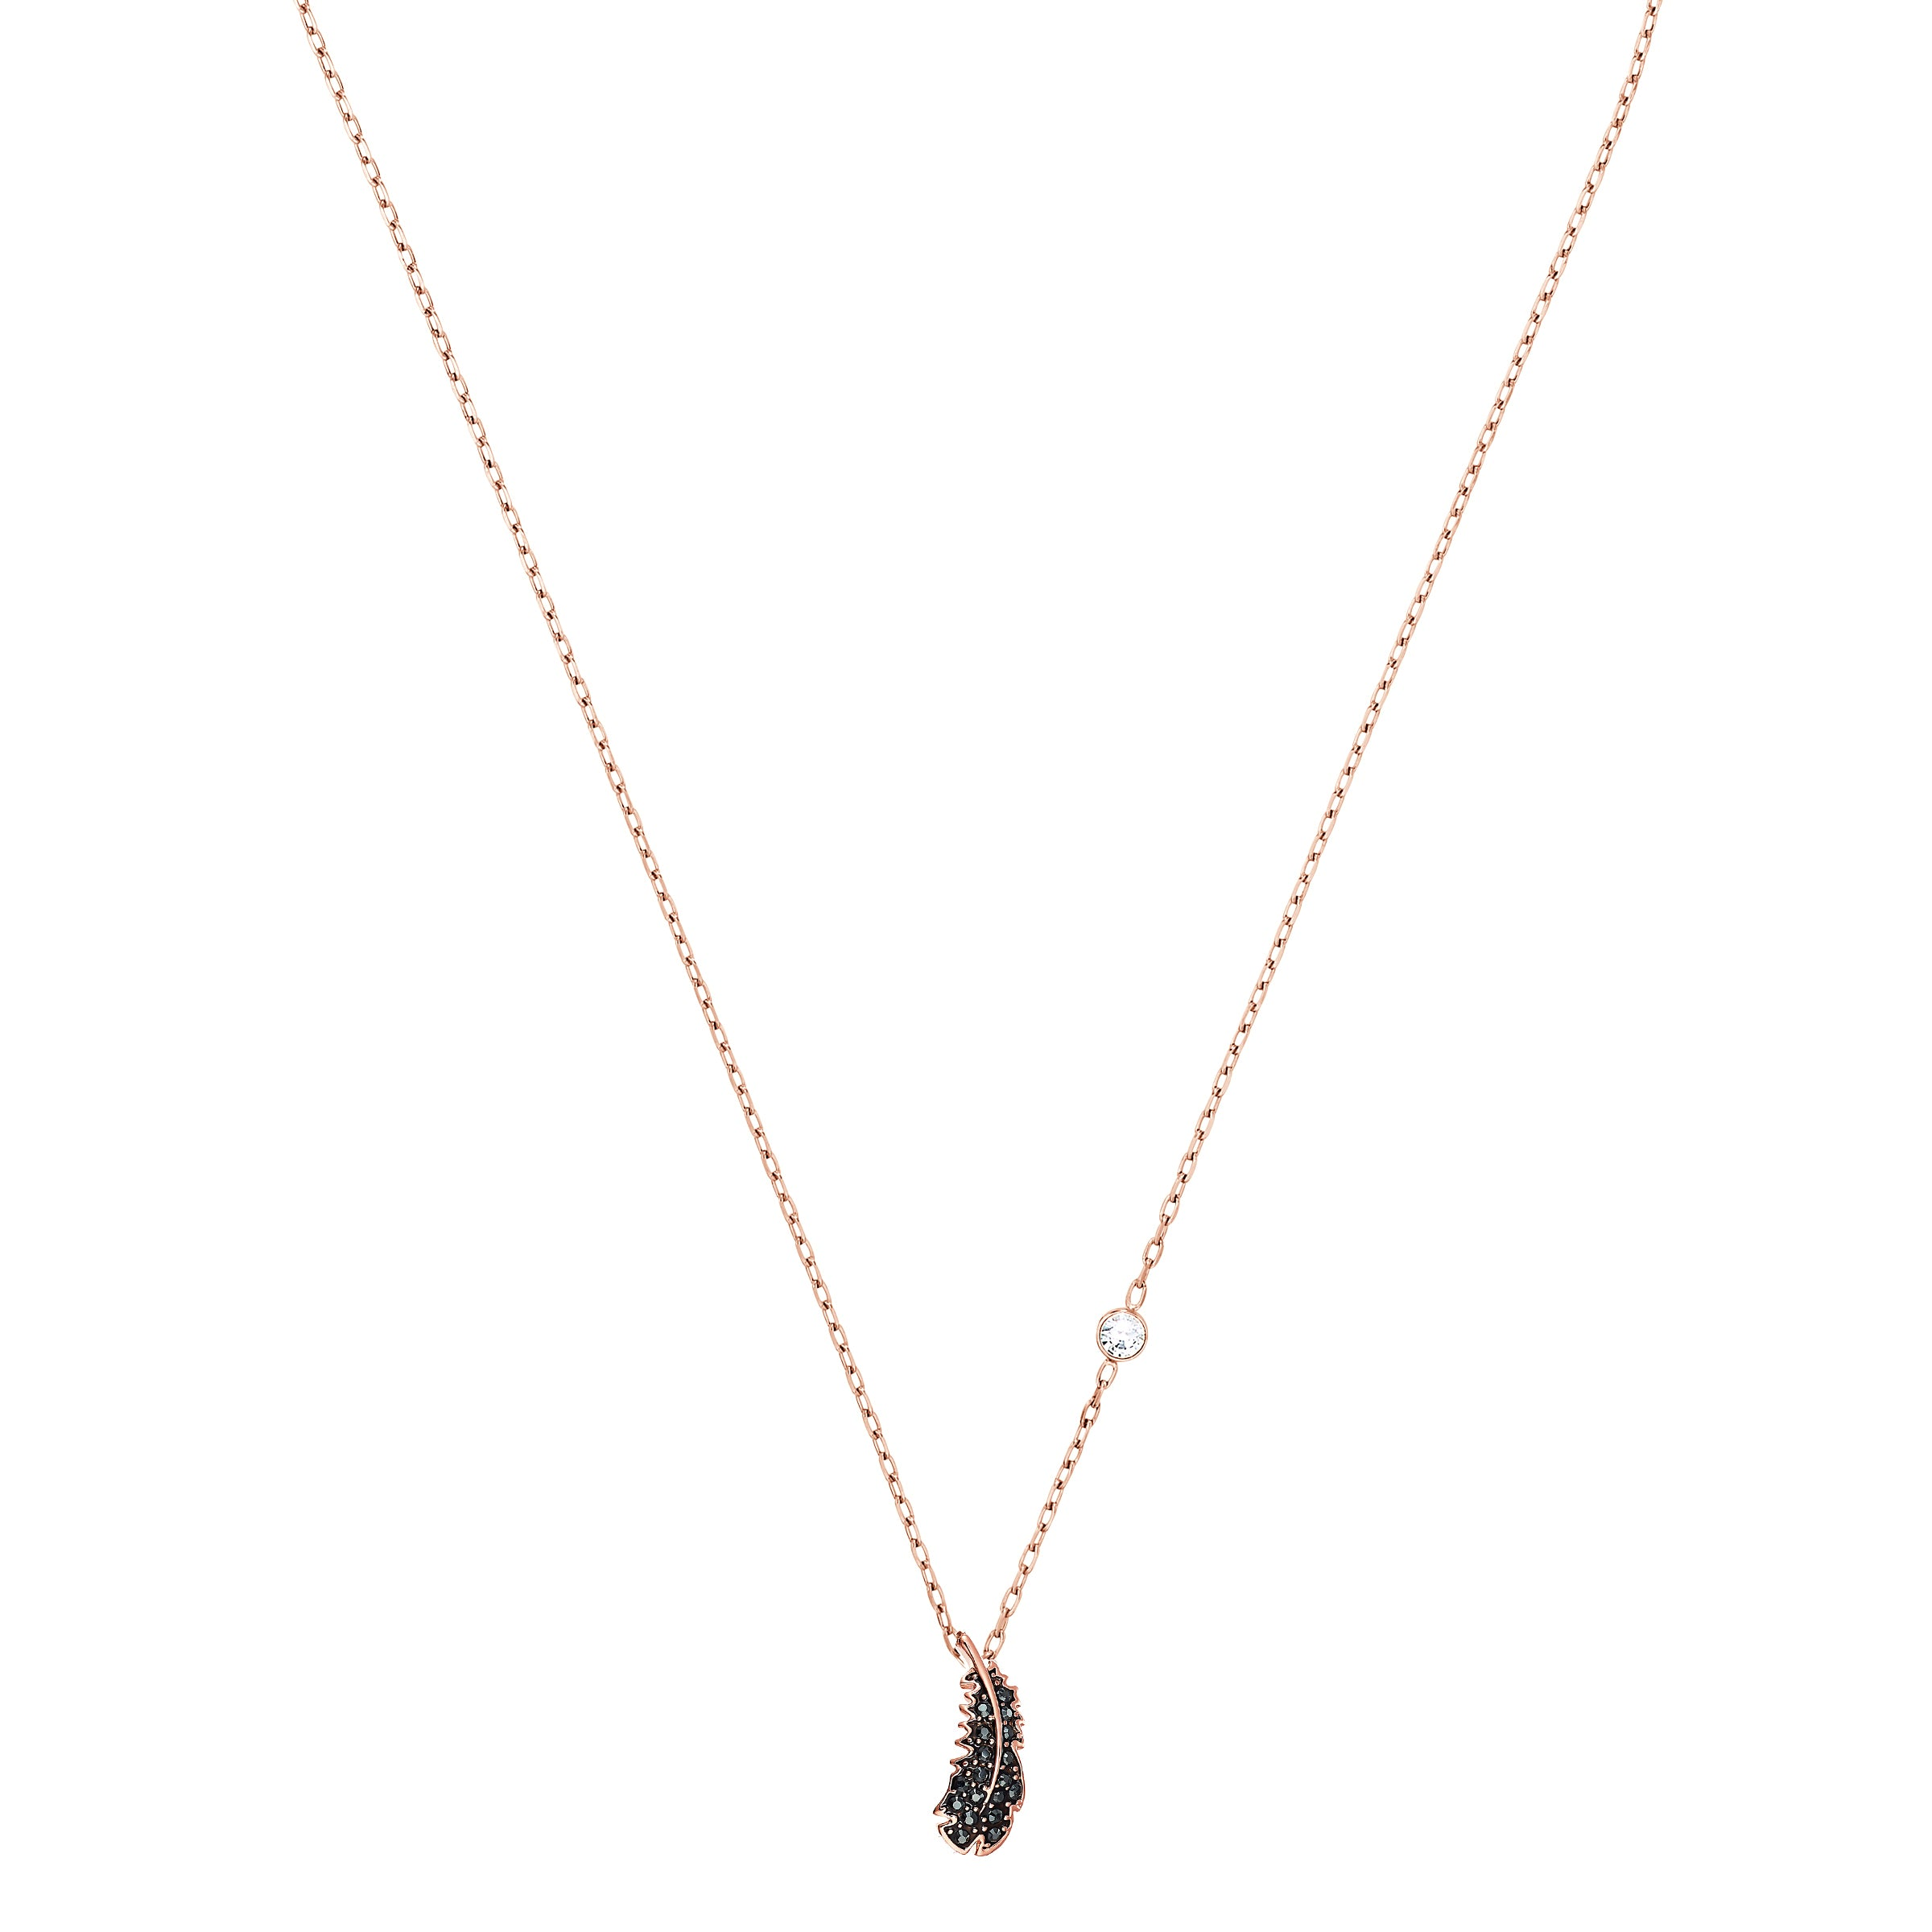 NAUGHTY:NECKLACE MINI JET HEM/ROS